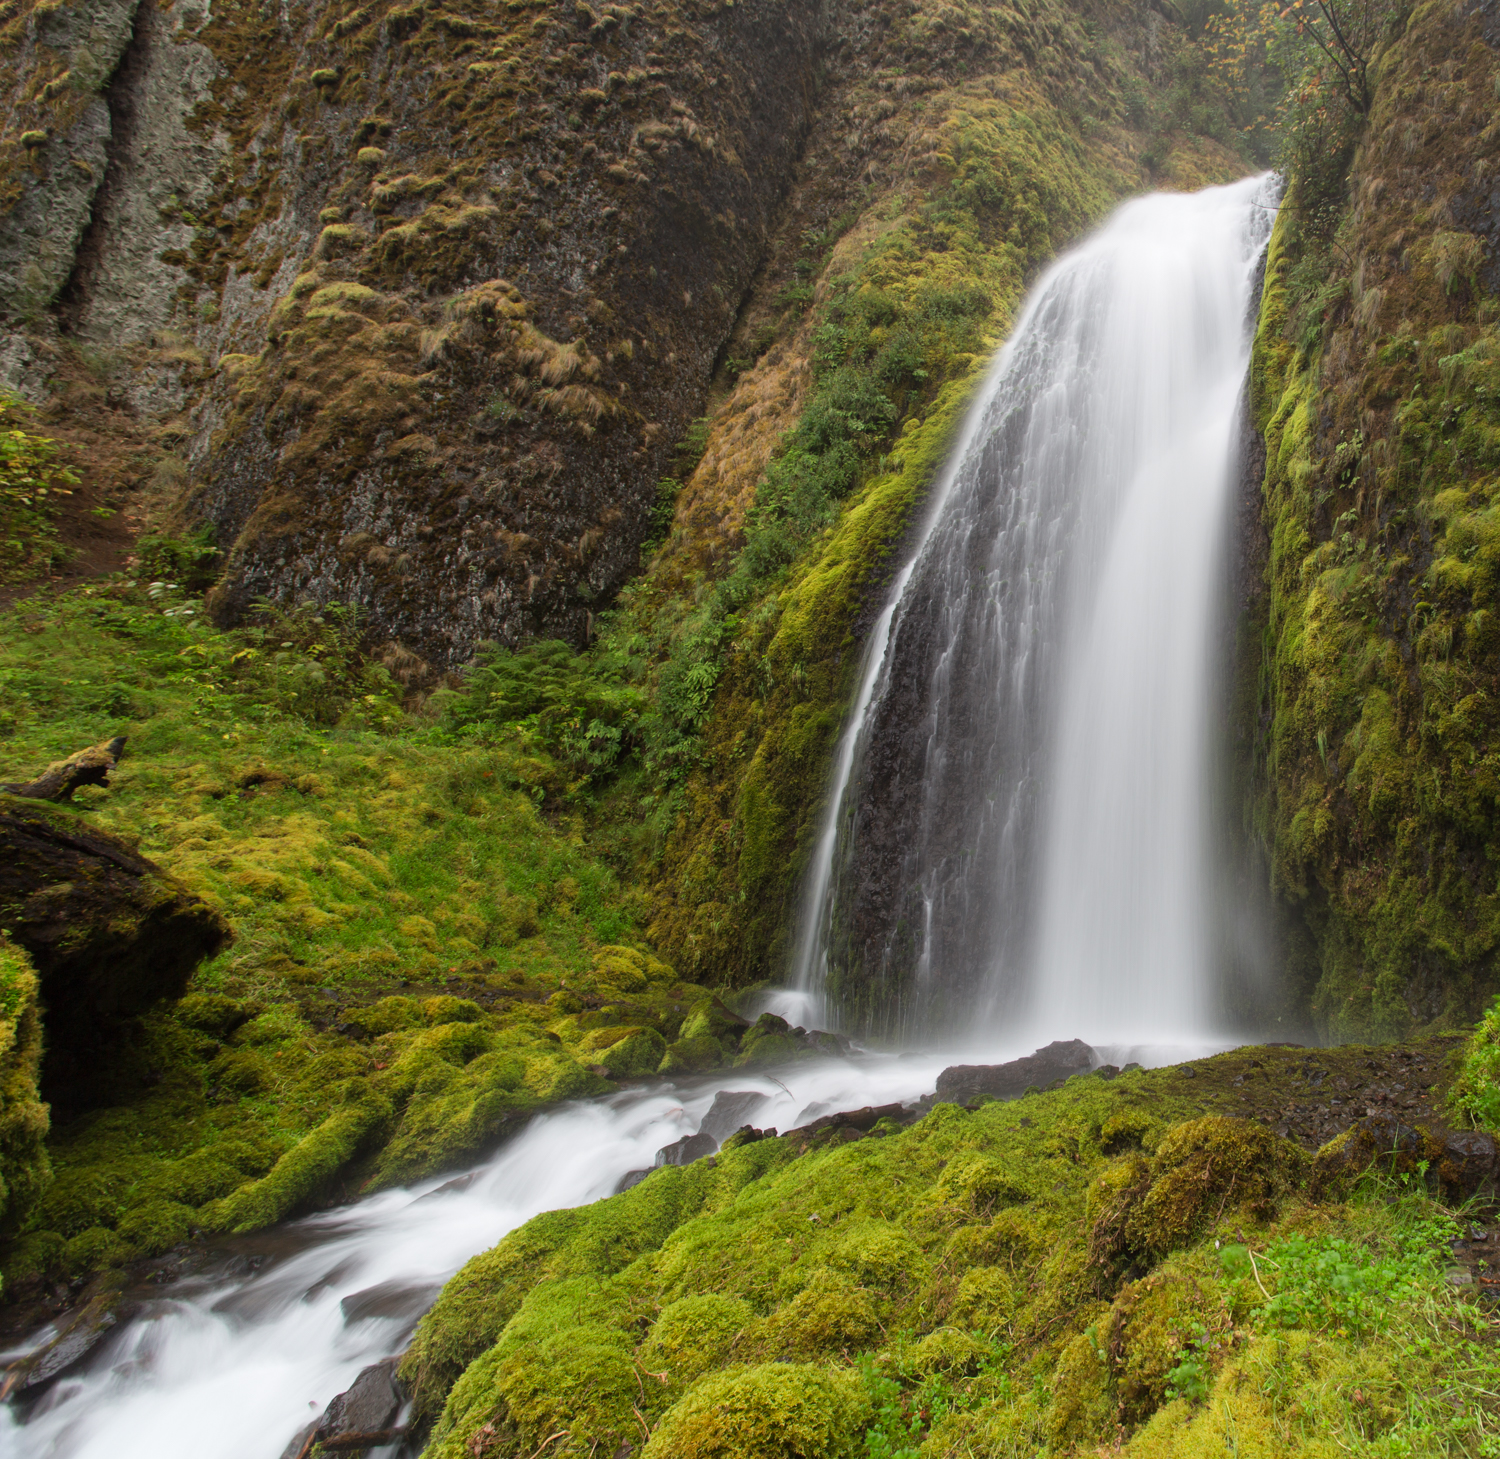 An Oregon waterfalls.  I think this is Wahkeena Falls but my notes are not good.  Along the Old Route 30 area in northwest Oregon.